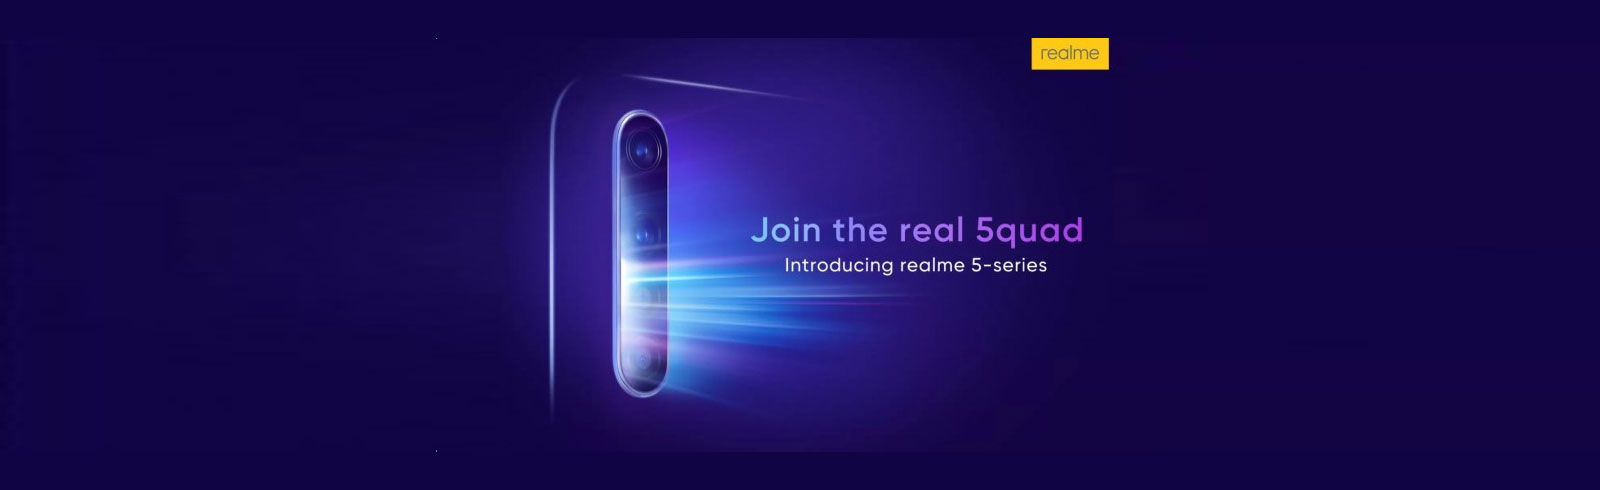 Realme 5 is scheduled for an August 20 launch